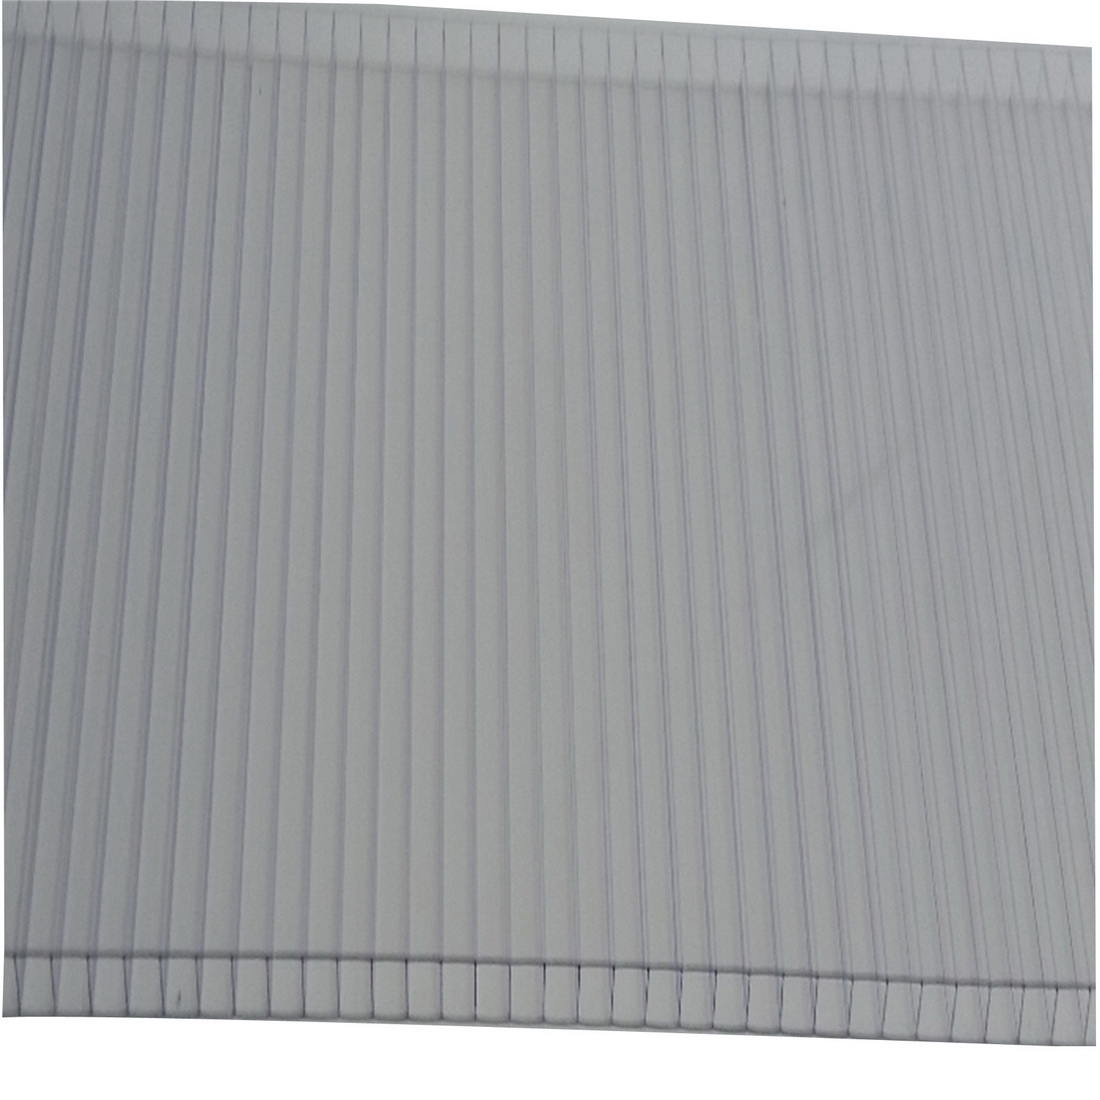 Twinwall Fluted Roofing 3600 x 1220 x 8mm Polycarbonate Clear 9418815042961